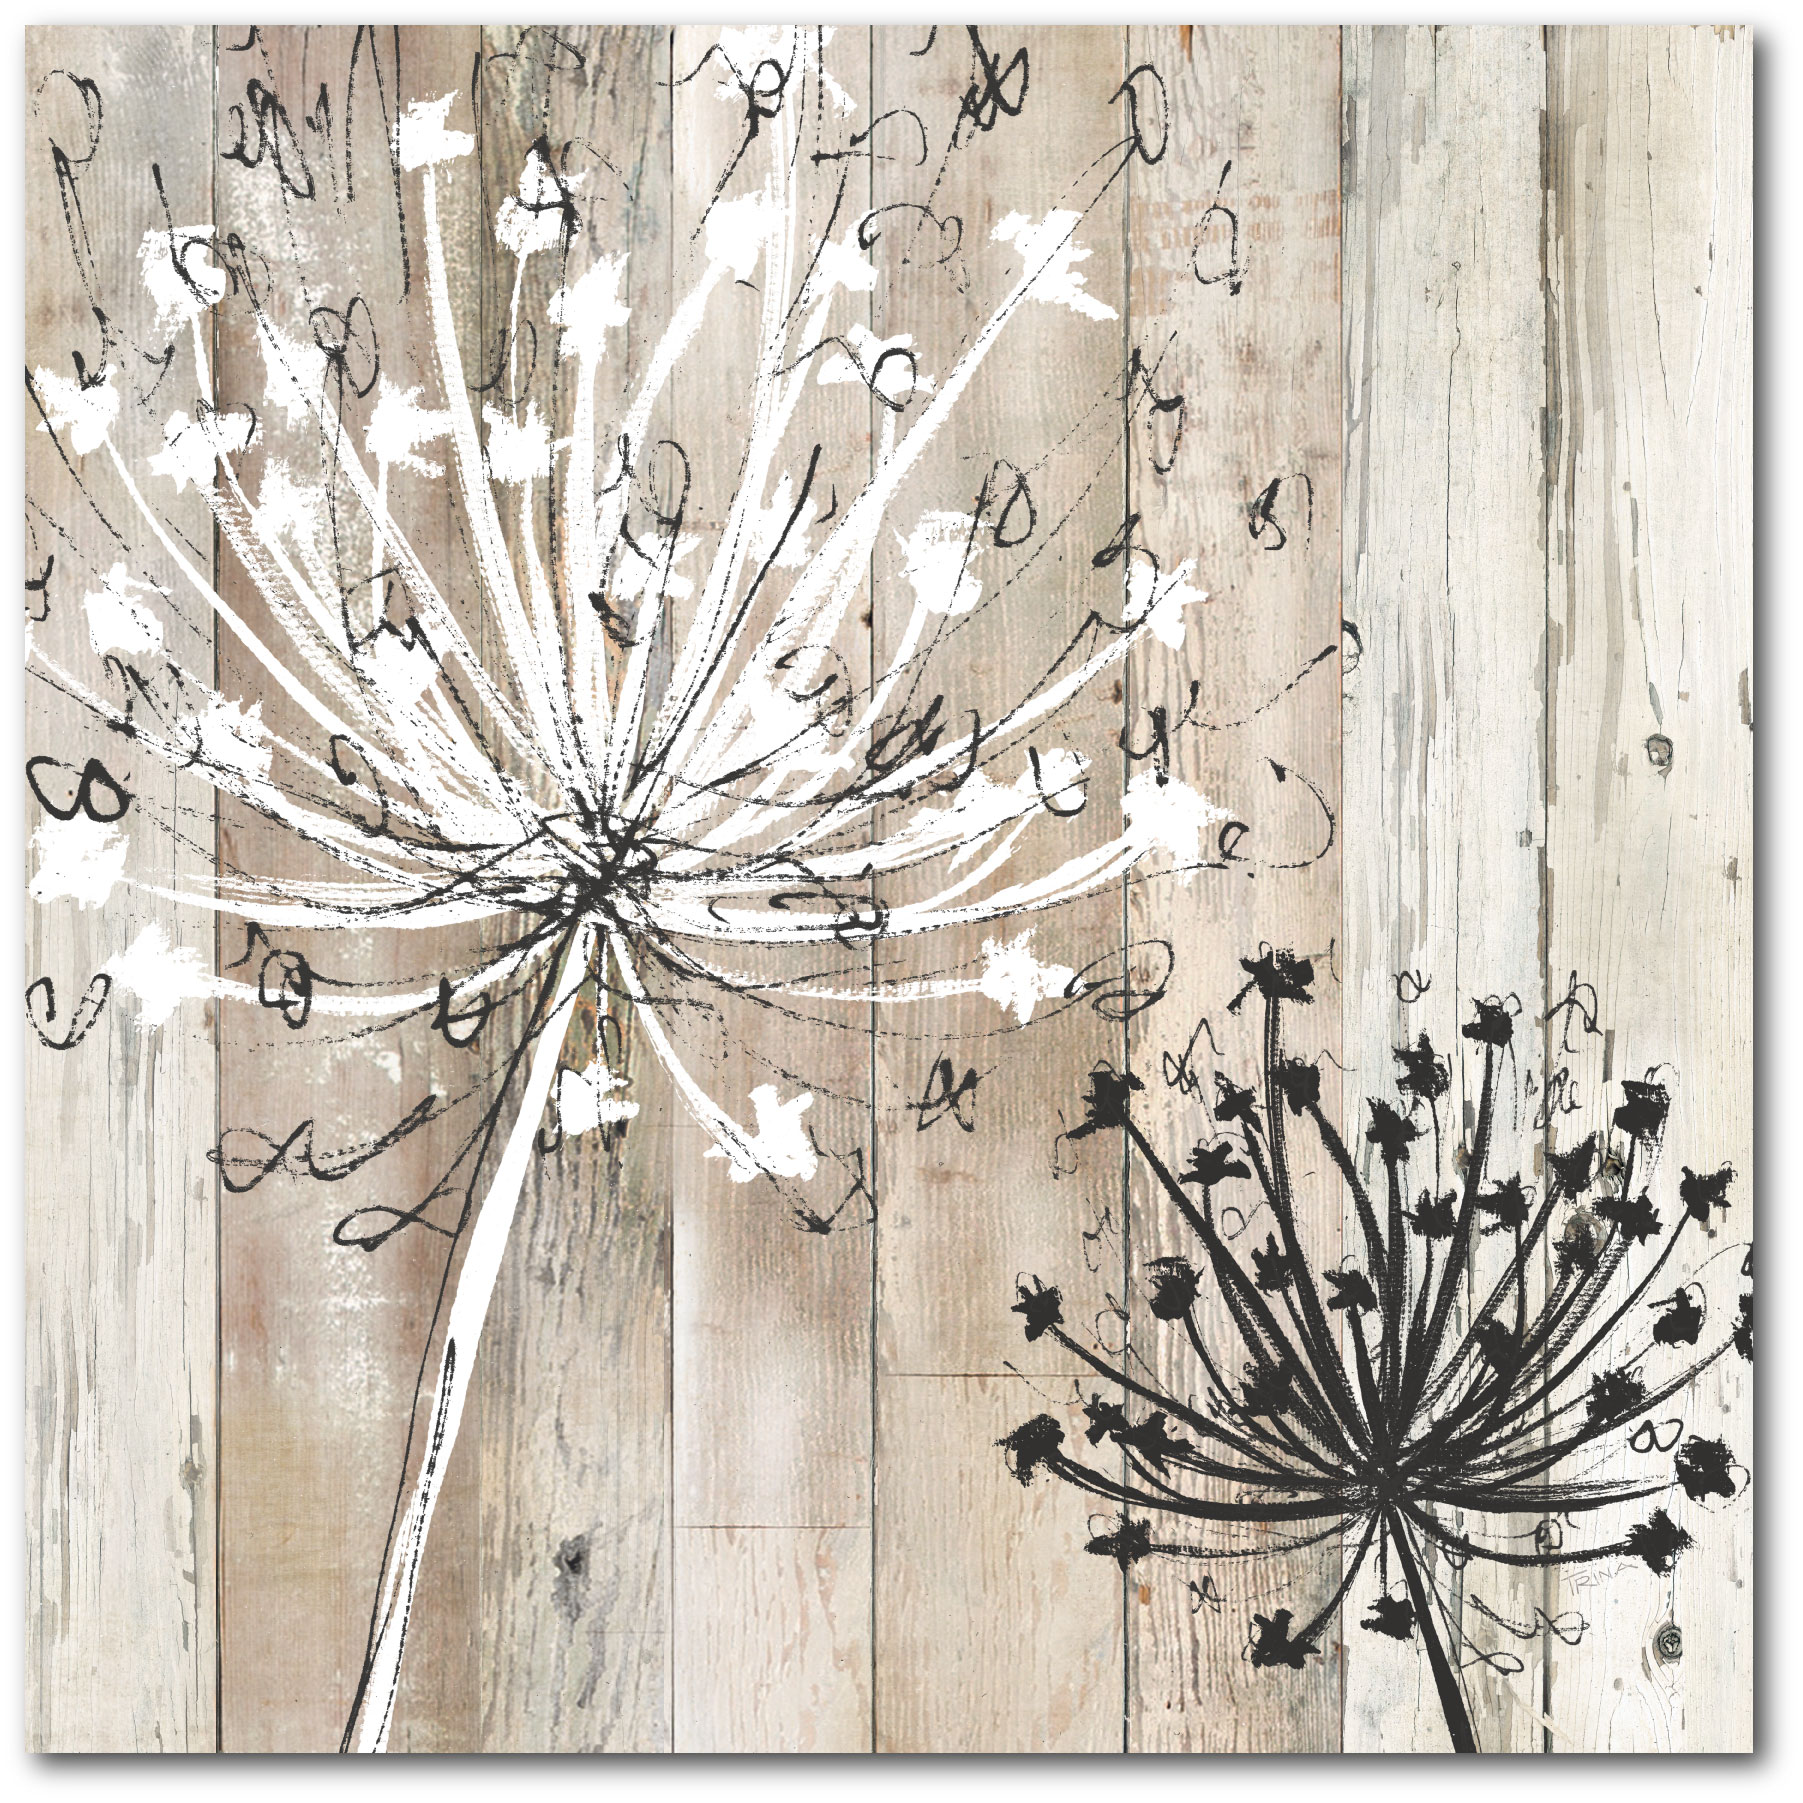 Courtside Market Farmhouse Fluff Gallery-Wrapped Canvas Wall Art, 16x16